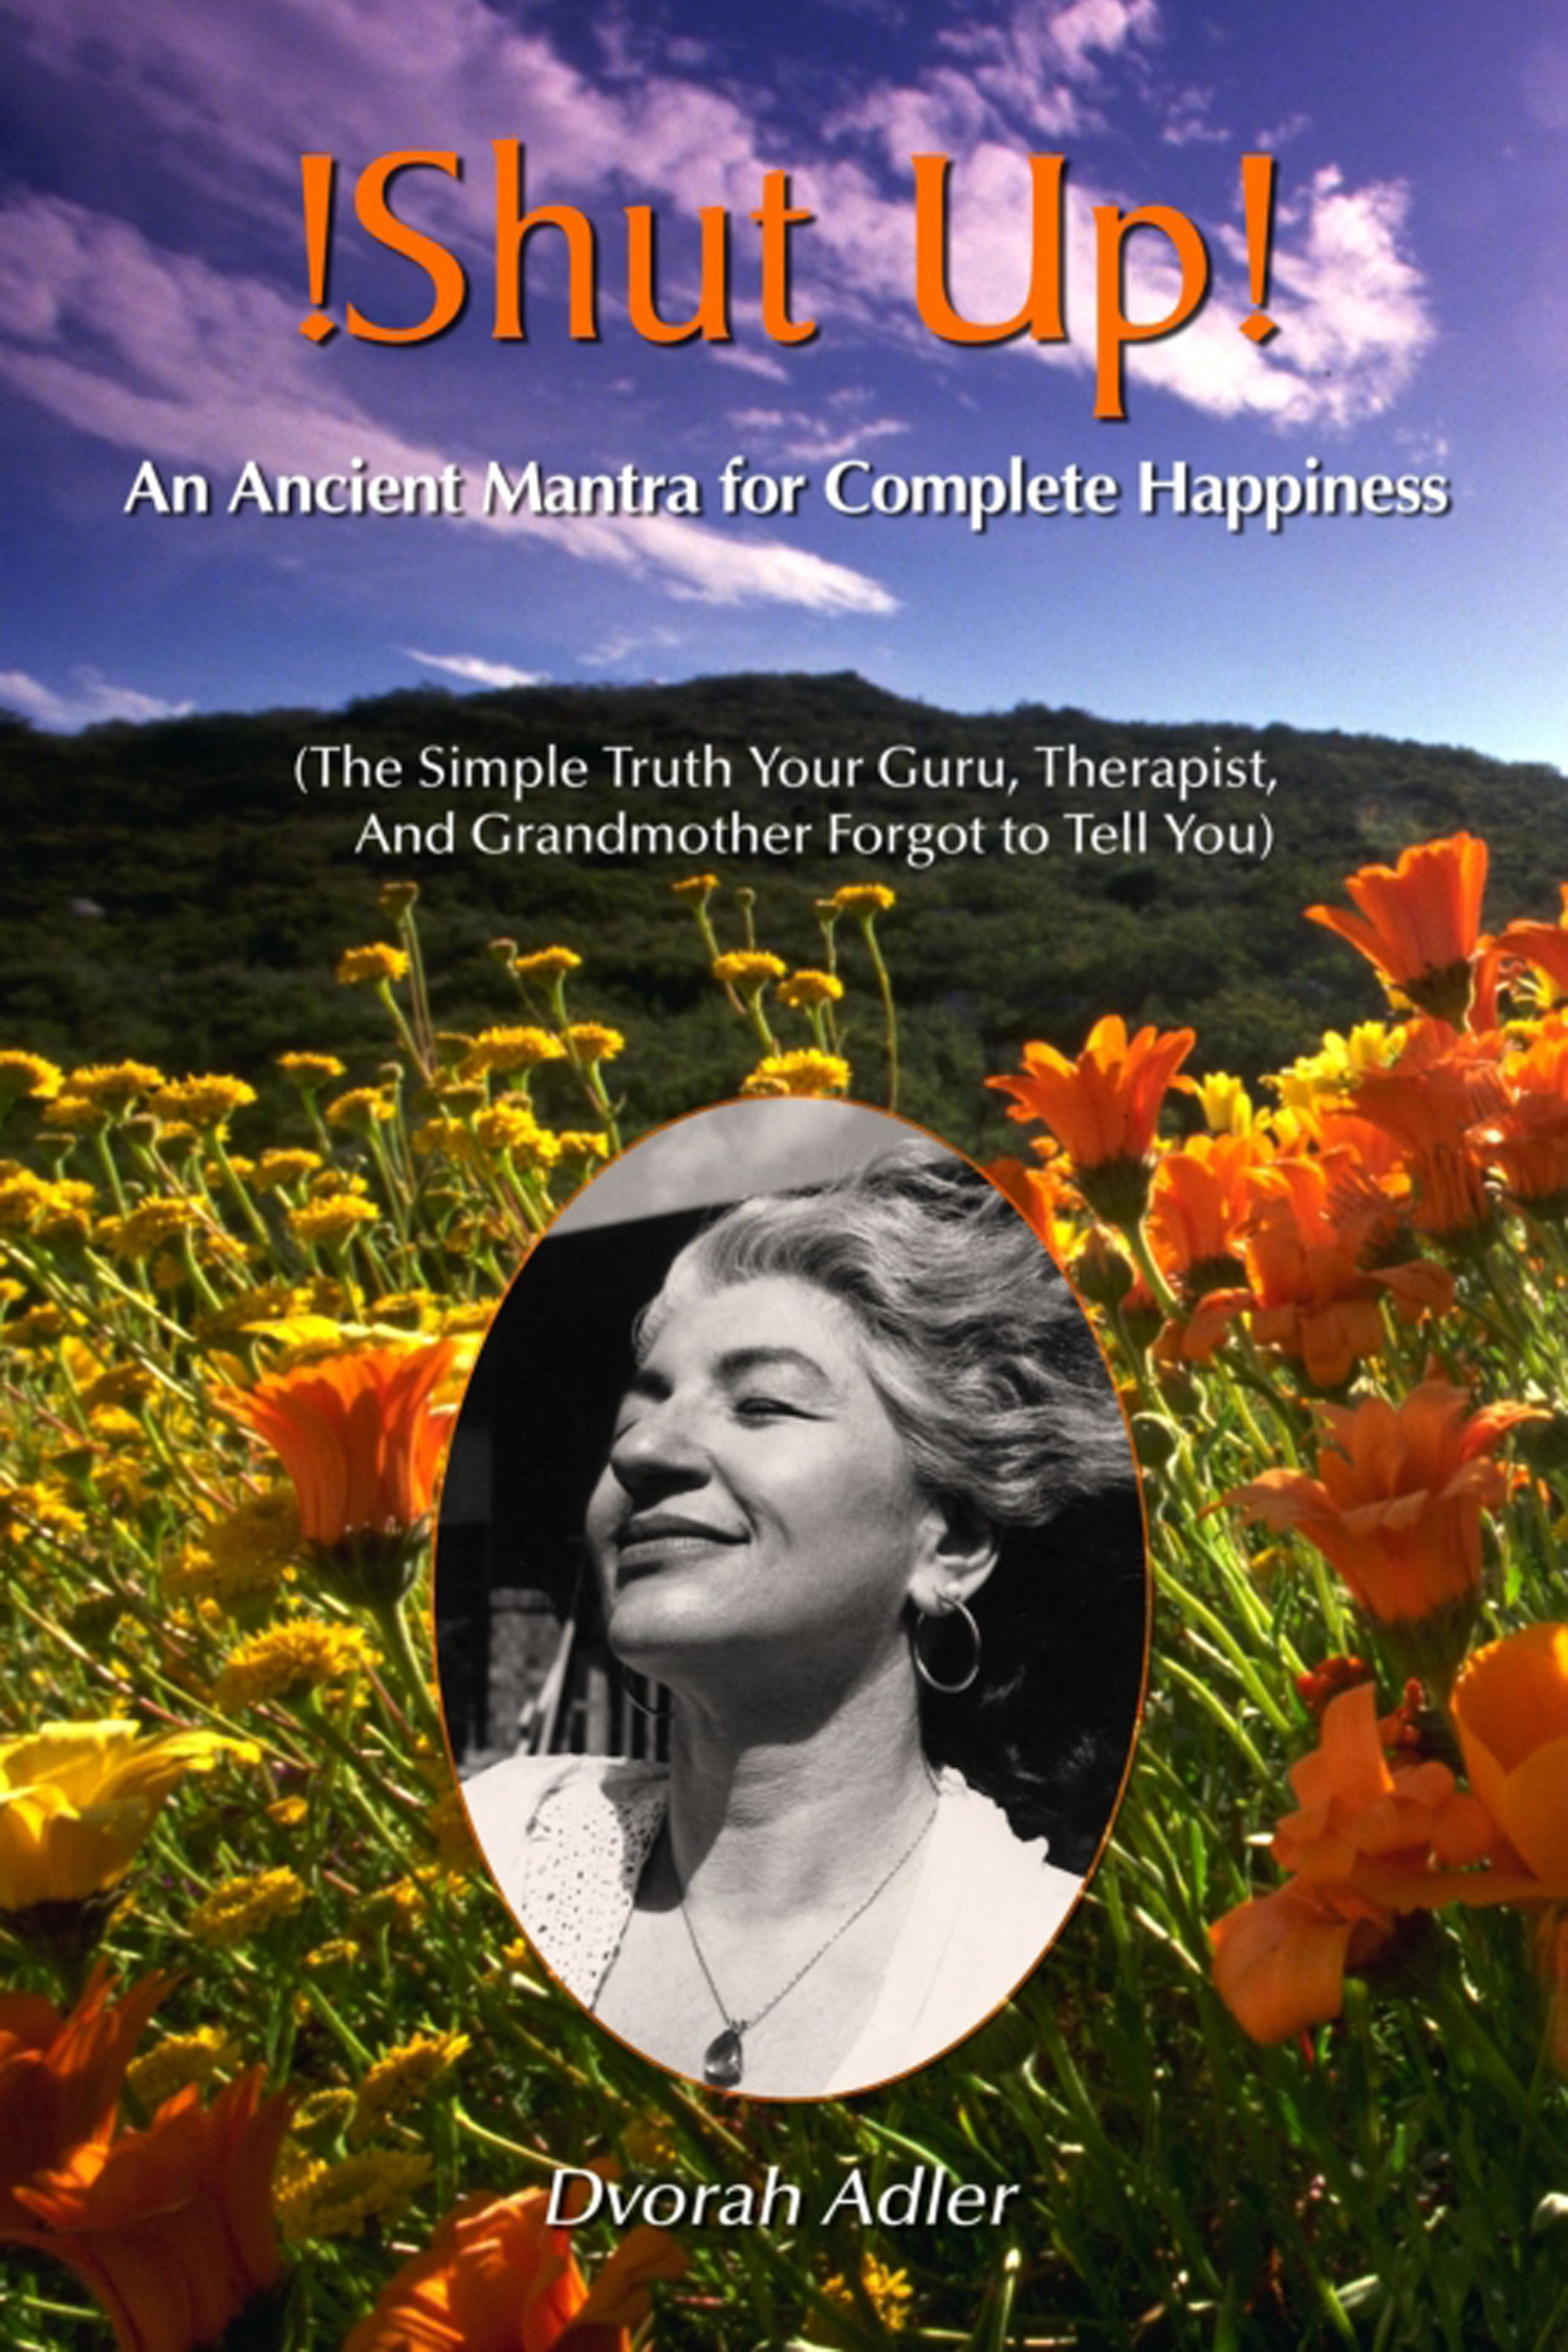 Shut Up! An Ancent Mantra For Complete Happiness: The Simple Truth Your Guru, Therapist and Grandmother Forgot To Tell You!